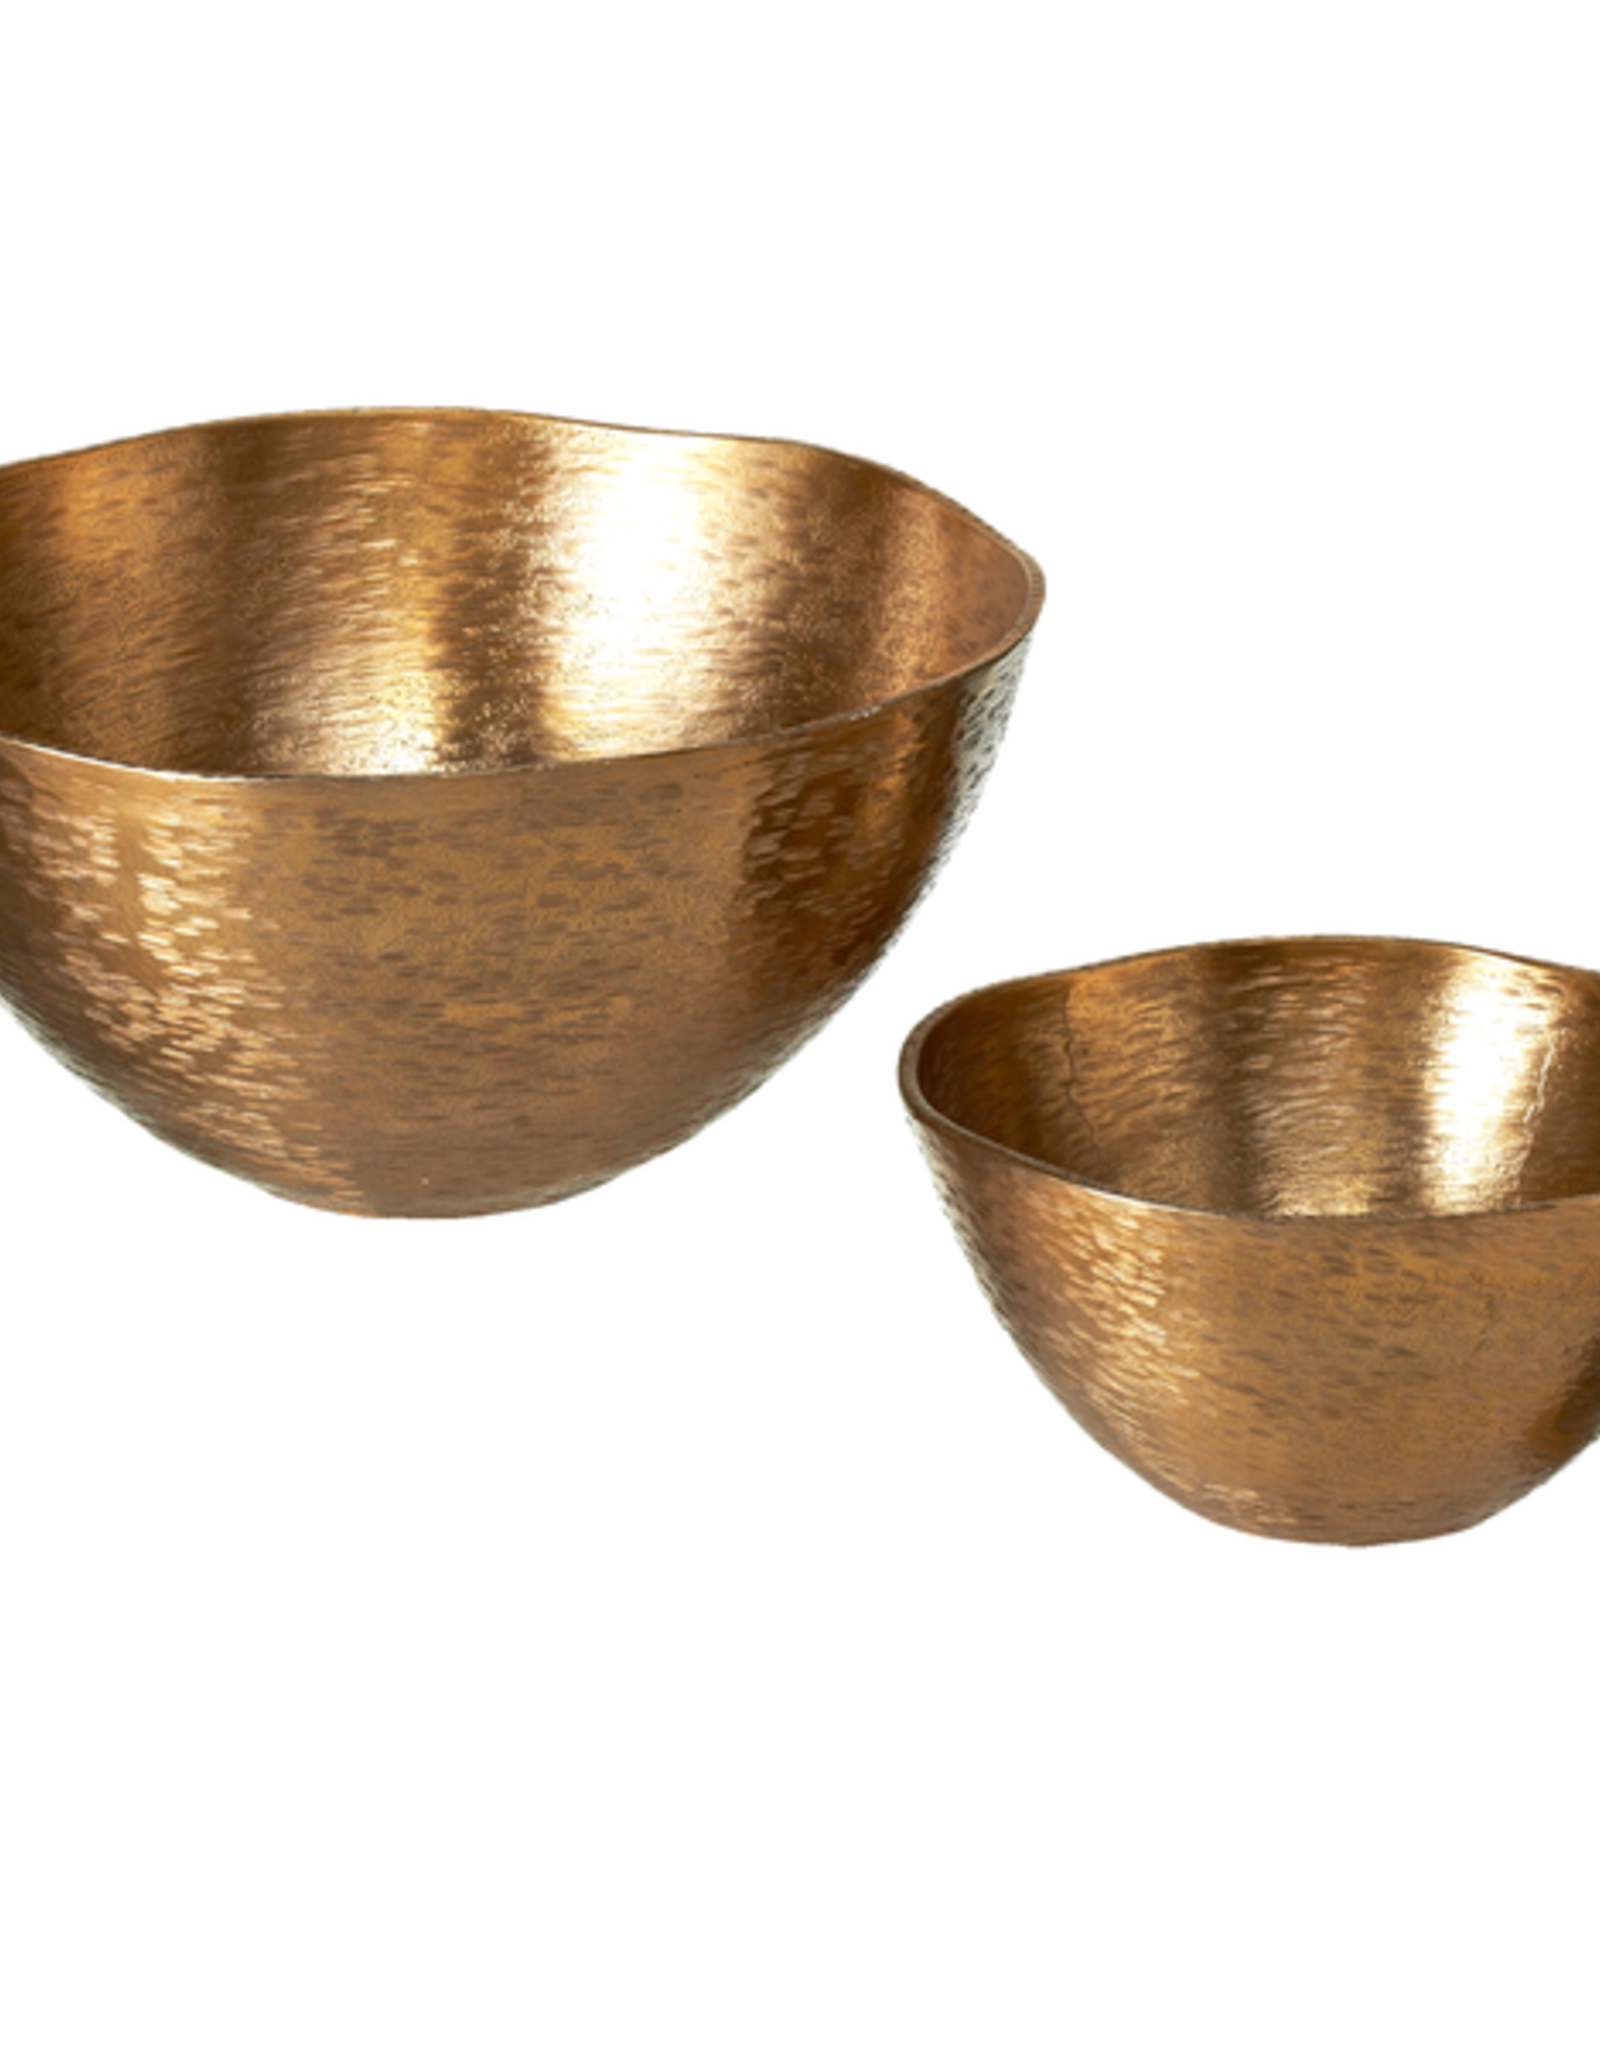 Midwest-CBK Gold Etched Bowl Sm